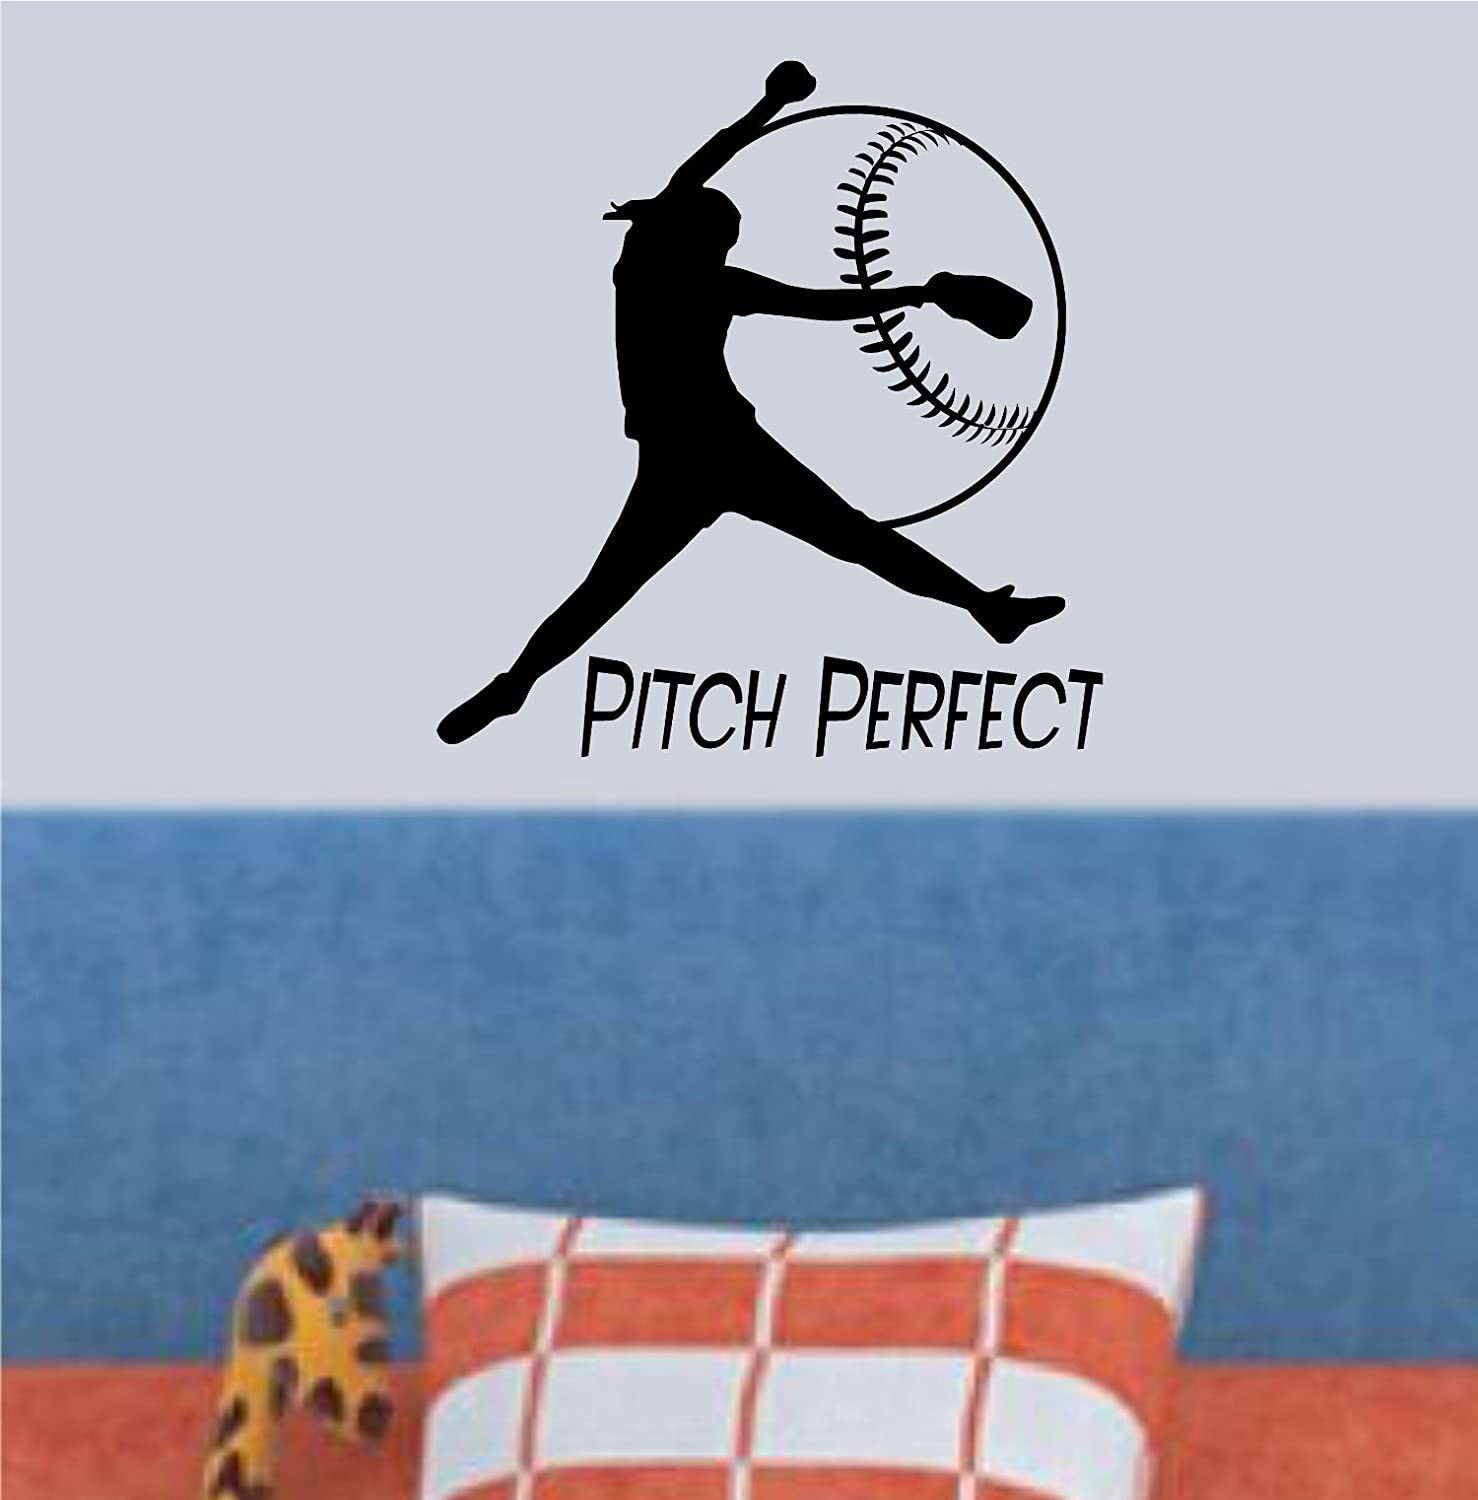 Amazon softball pitching high quality black vinyl wall decal amazon softball pitching high quality black vinyl wall decal girls softball pitch perfect usa made unique softball gift young girls bedroom teenagers amipublicfo Choice Image